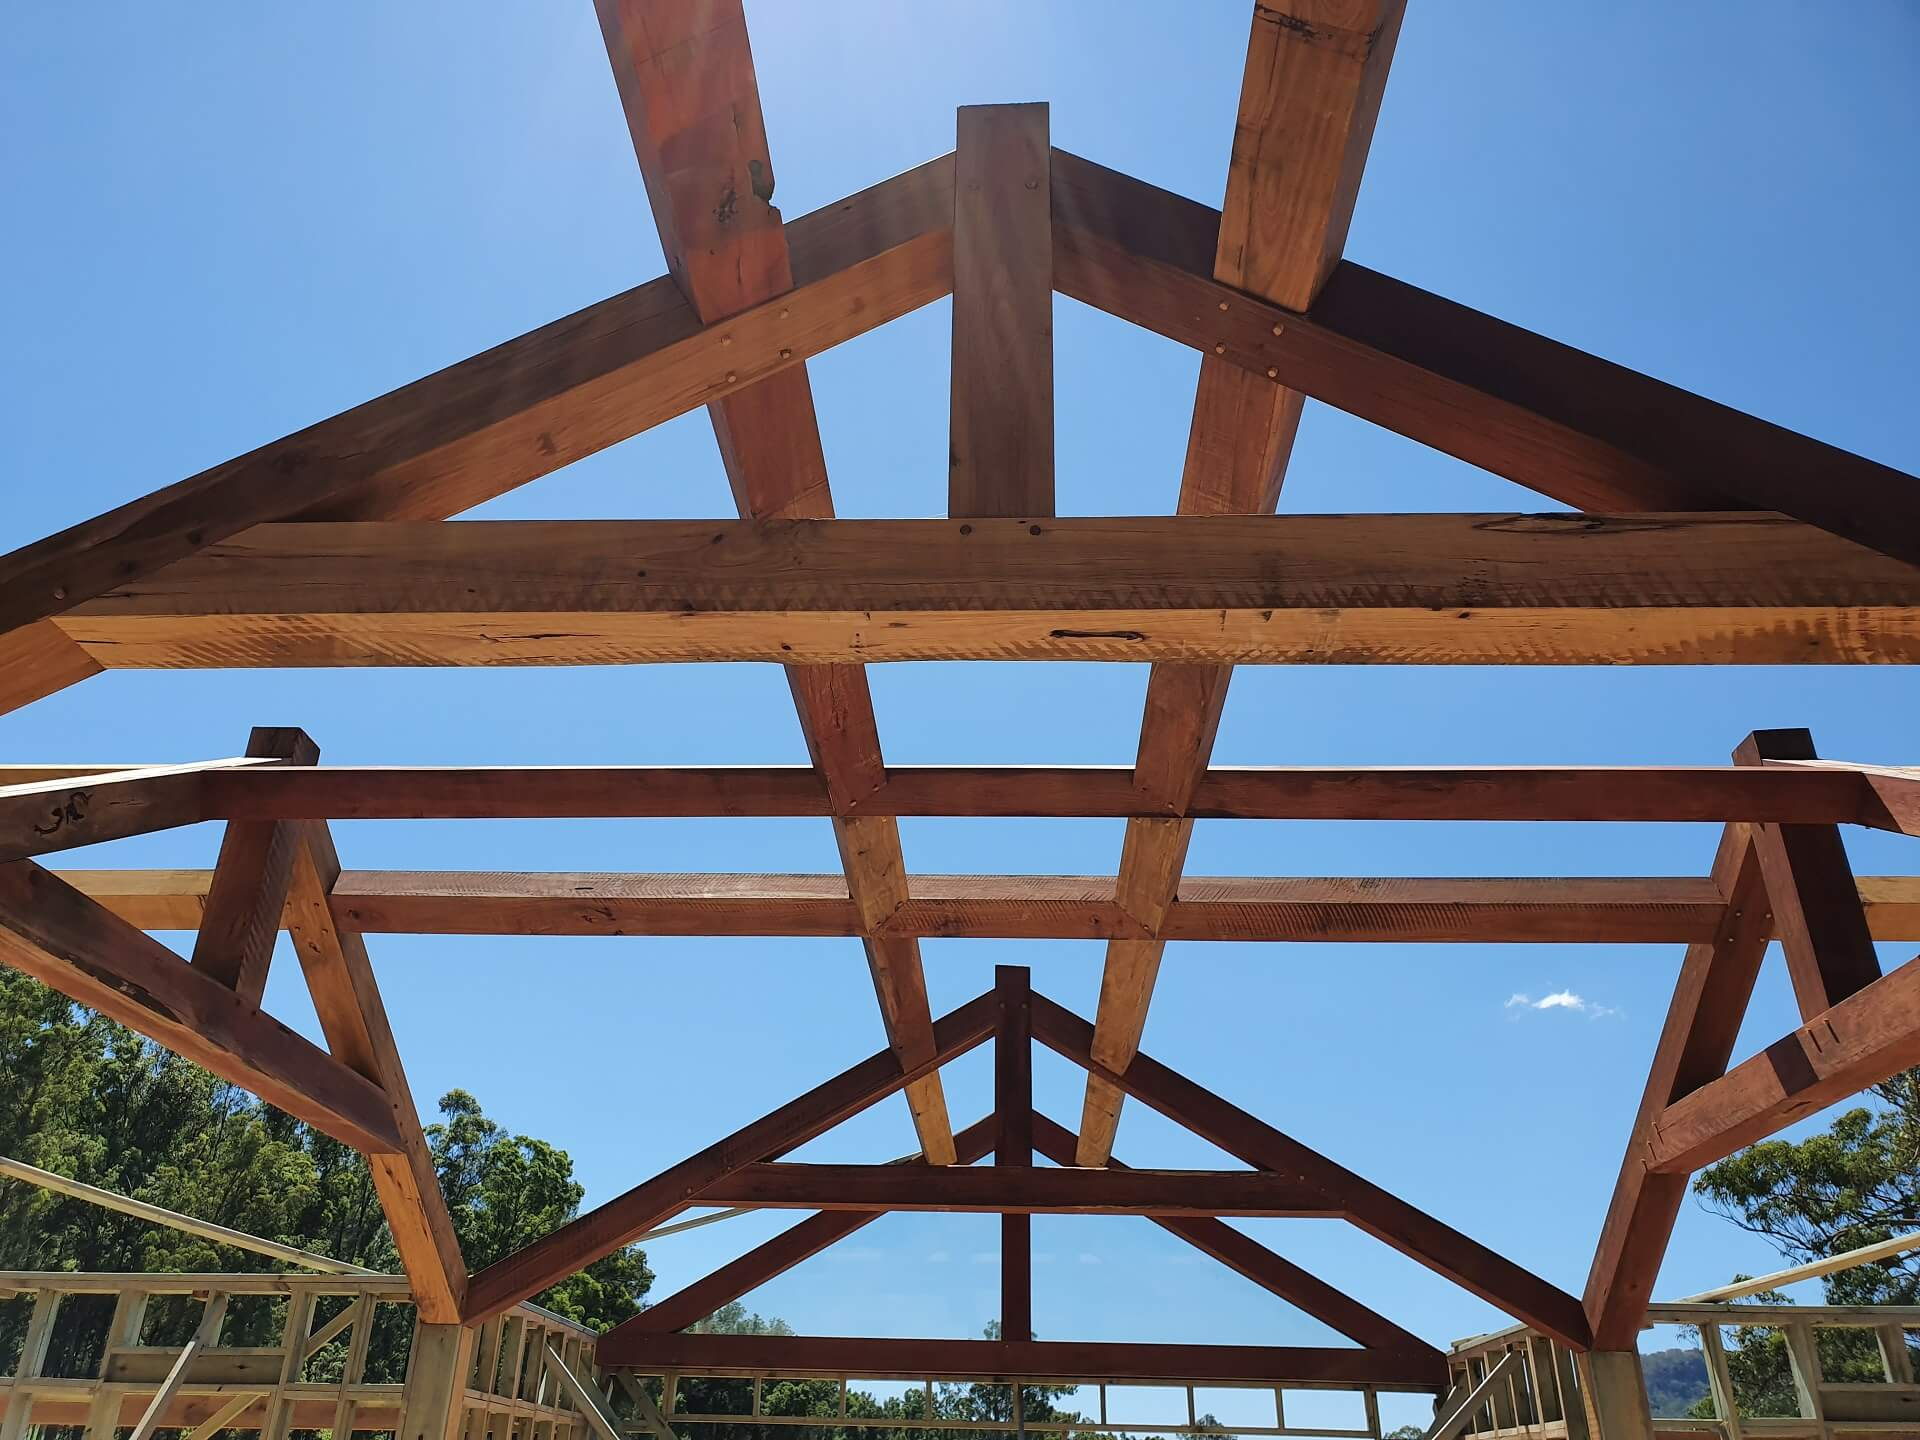 Installed timber roof frame featuring heavy timber double purlins intersect in the center of the room supported by timber feature trusses